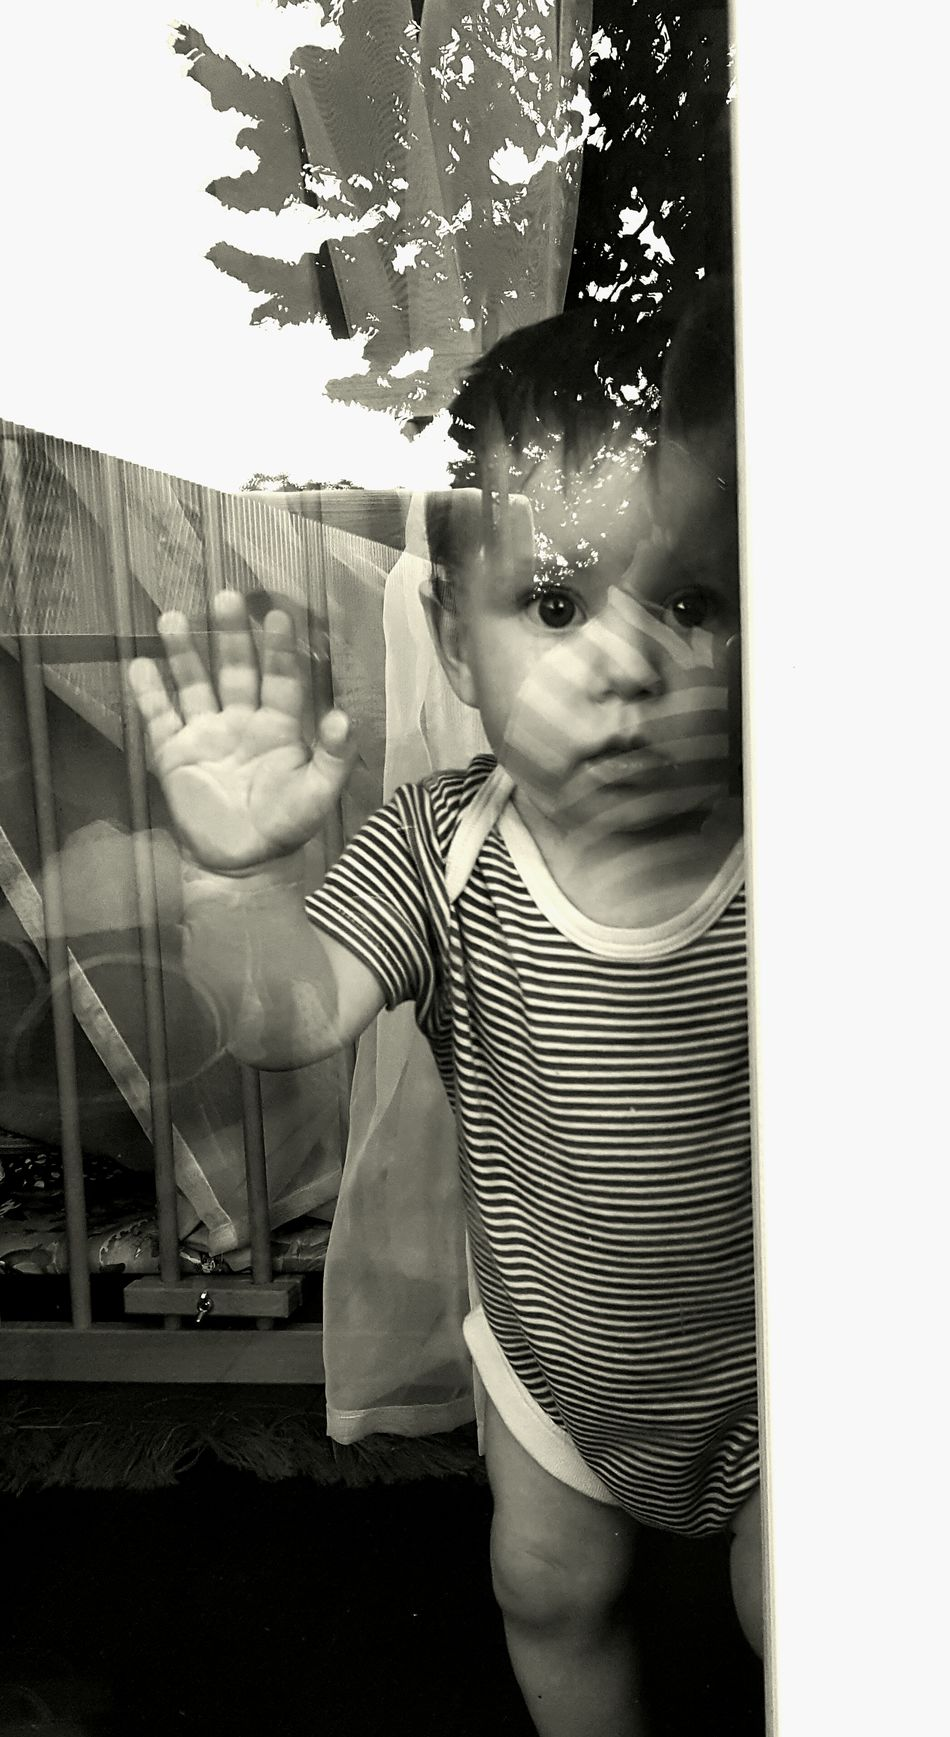 Young Boy Baby Boy Babyboy Baby Photography First Steps First Step  Inside The Windows Looking Outside Looking Out Of The Window What Is Out There Outside Unknown Unknow World Challenge The World Black And White Photography Light And Shadow Lines And Shapes Reflections Reflection_collection Tree Reflection On Glass Window Fine Art Photography Schwarzweiß